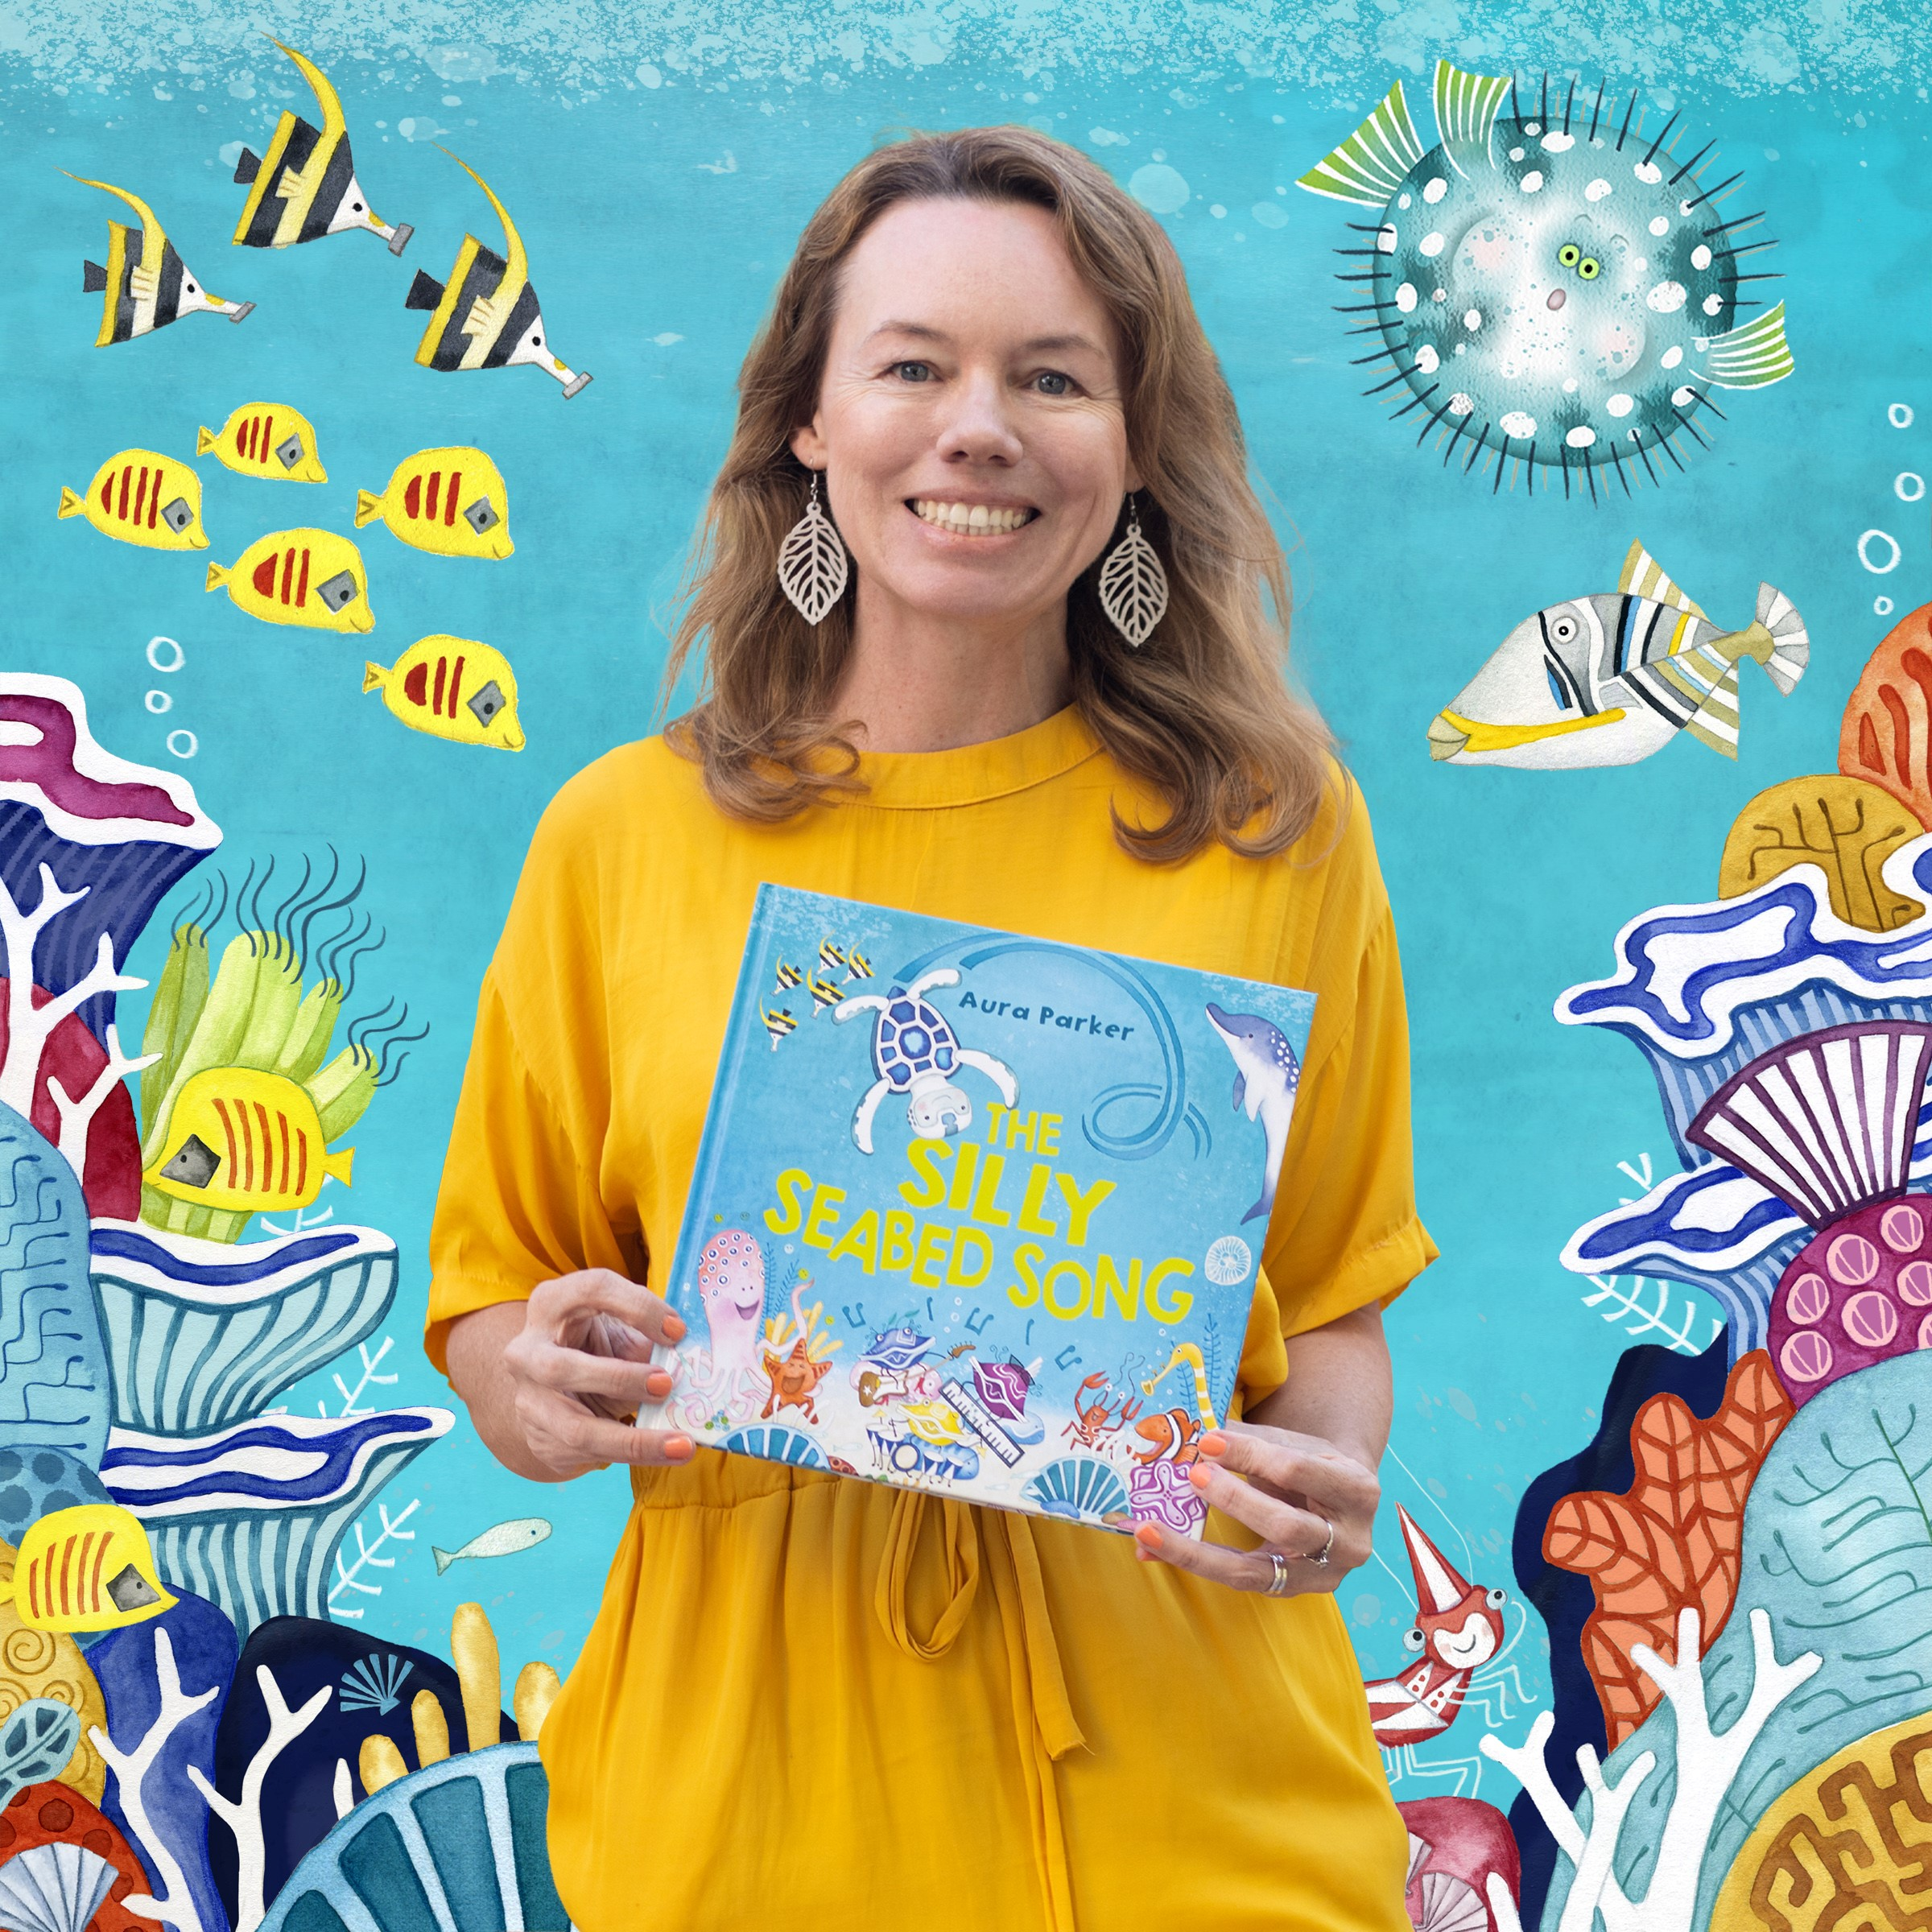 Author Aura Parker holding her picture book The Silly Seabed Song